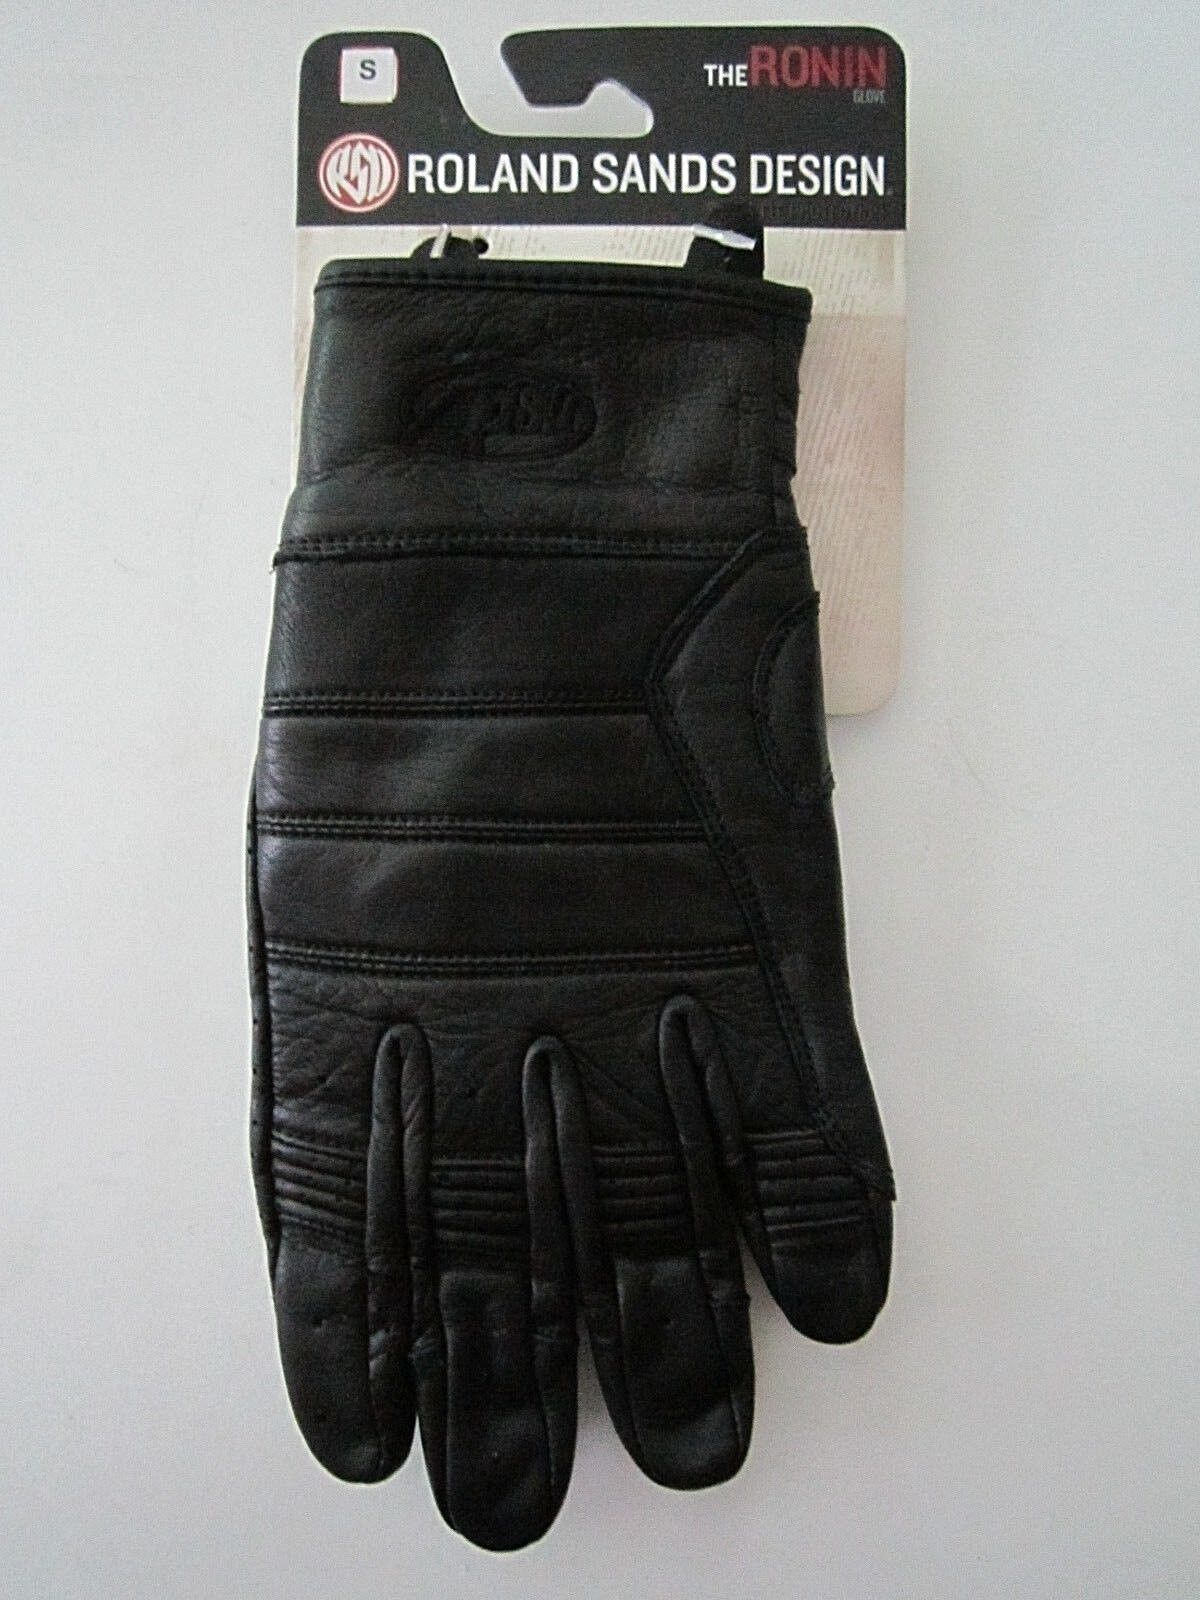 NEW ROLAND SANDS RSD RONIN LEATHER GLOVES IN BLACK SIZE SMALL S SM - FREE SHIP!